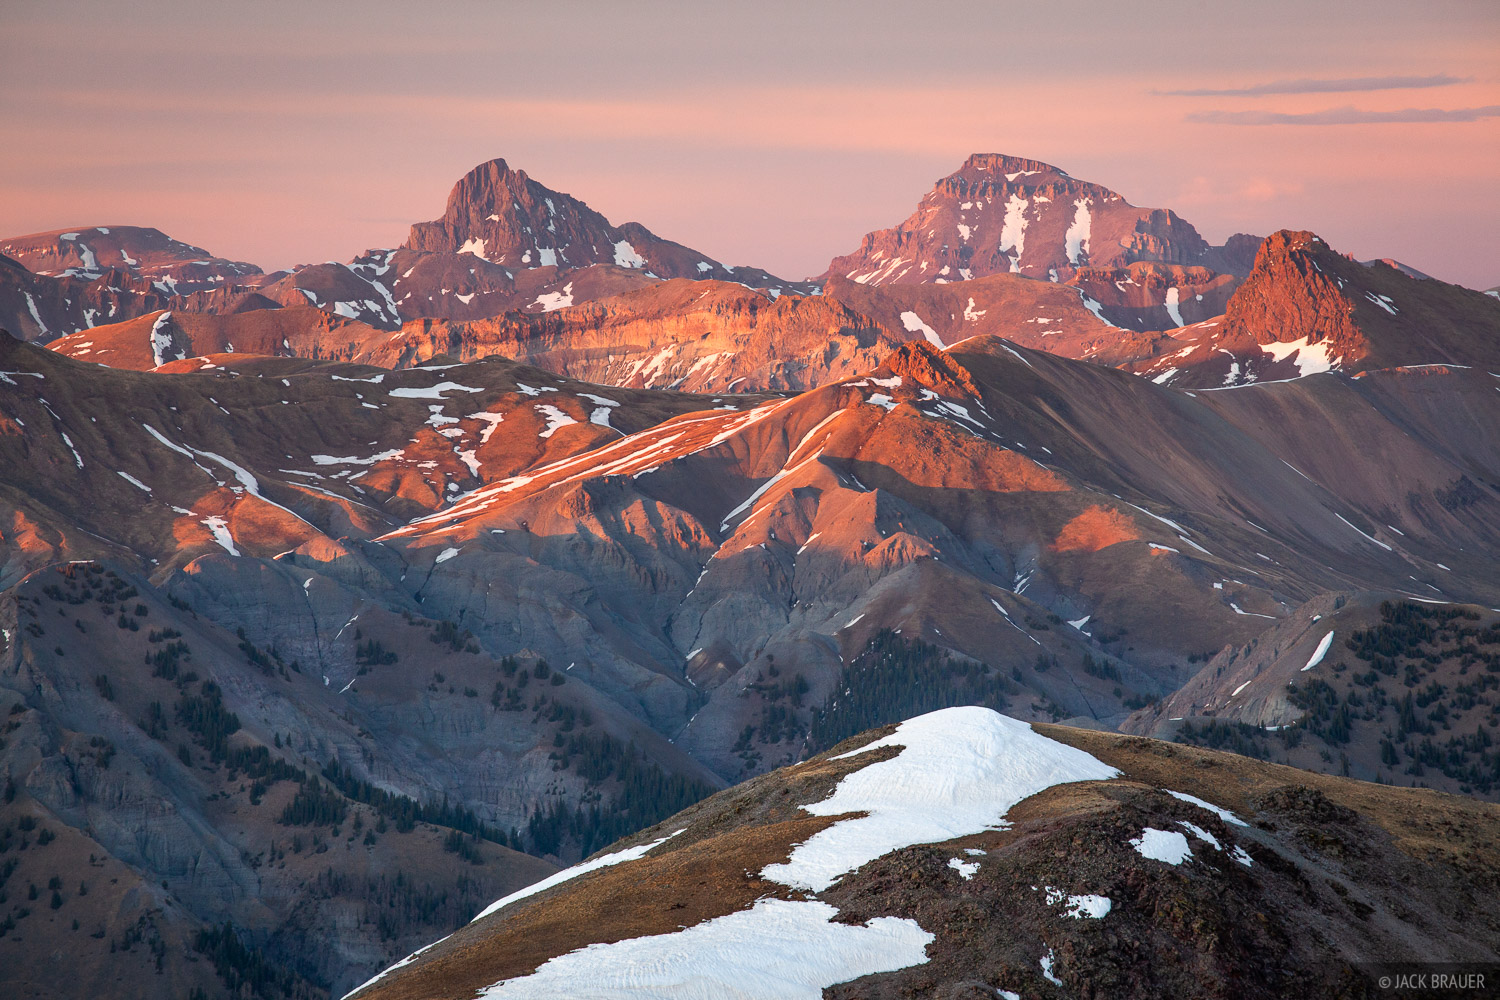 Colorado, San Juan Mountains, Uncompahgre Peak, Uncompahgre Wilderness, Wetterhorn Peak, sunset, 14ers, photo